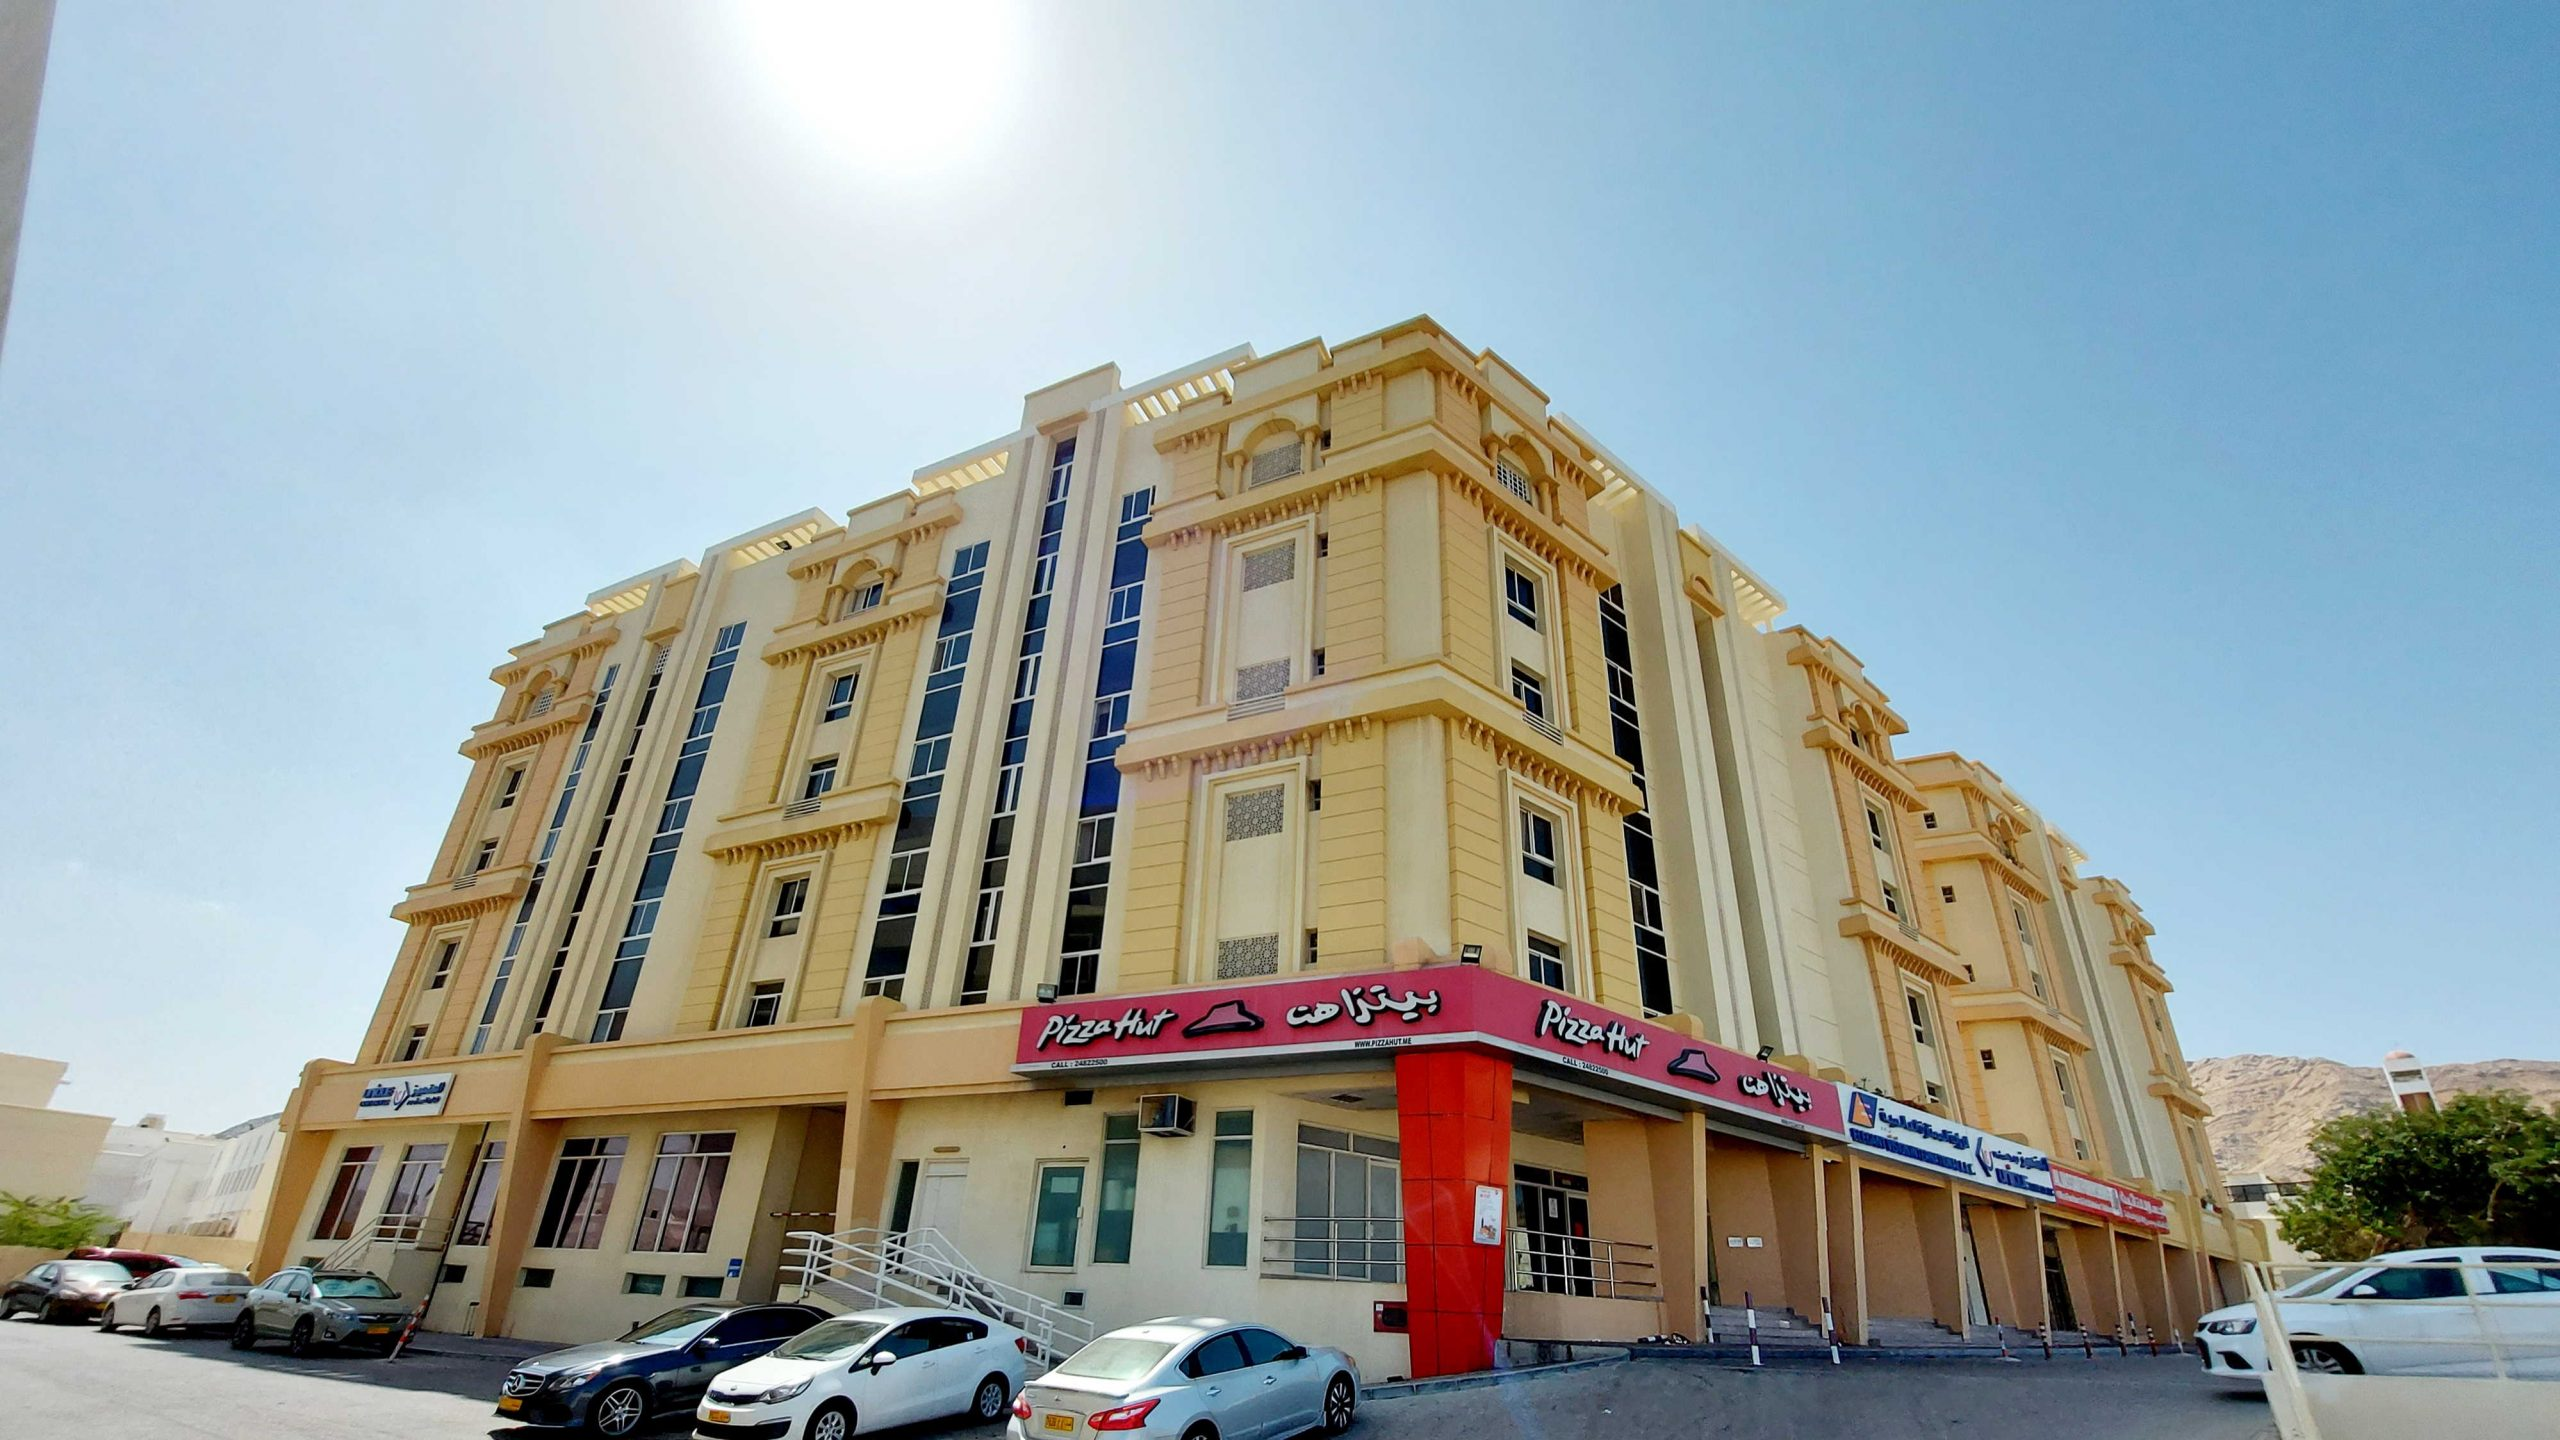 """You are currently viewing Al Sharq <br><span class=""""headlin"""">Ruwi, Muscat, Oman</span><br><span class=""""headlin2"""">Category: 1/2/3 Br Apartments/Office Space – For Rent</span>"""